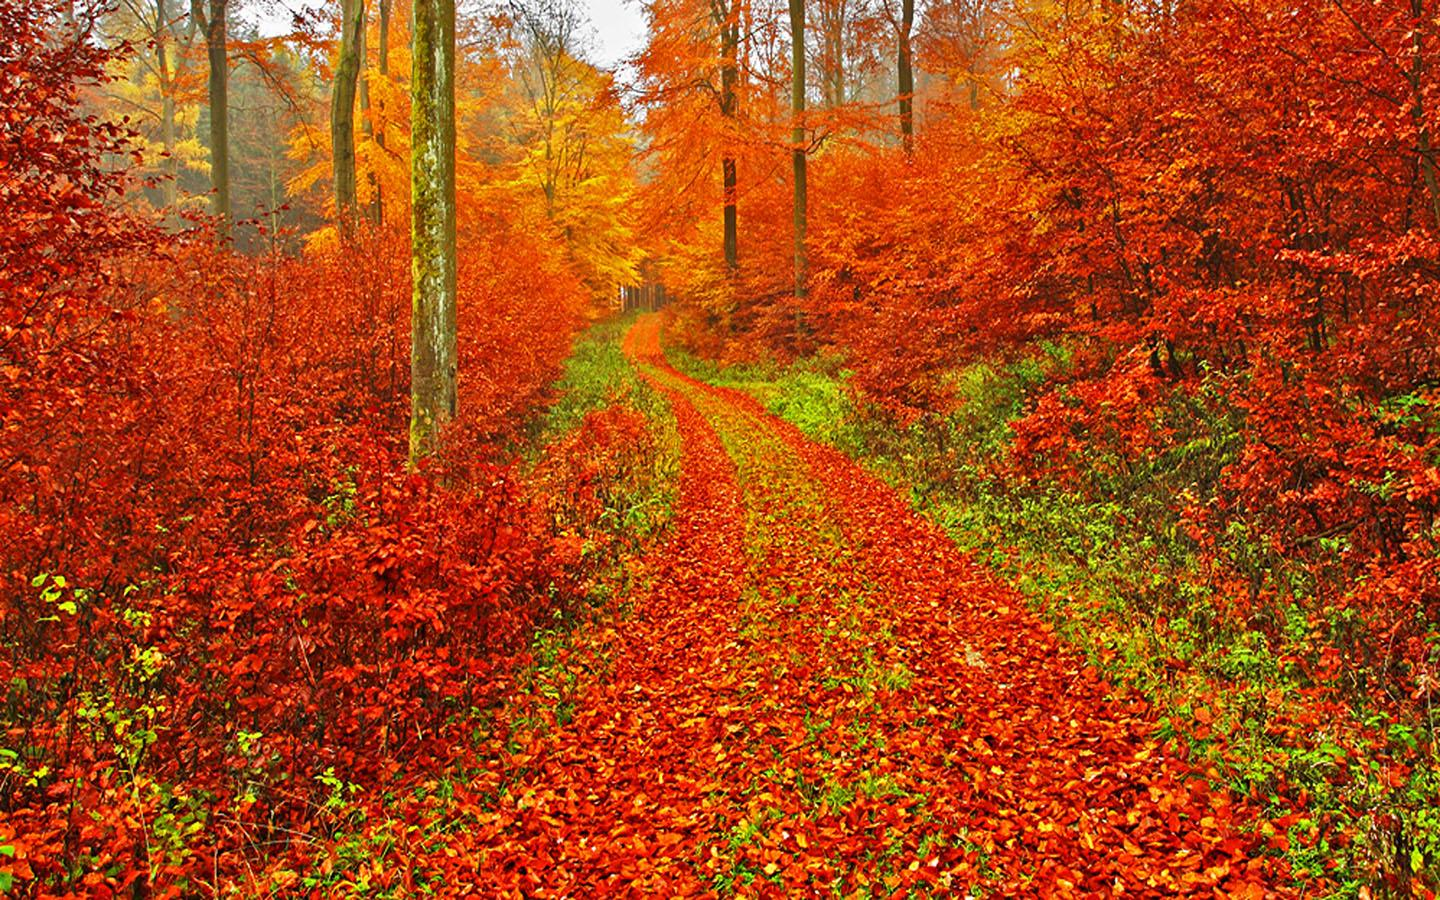 4k Fall Michigan Wallpaper Autumn Wallpaper Android Apps On Google Play